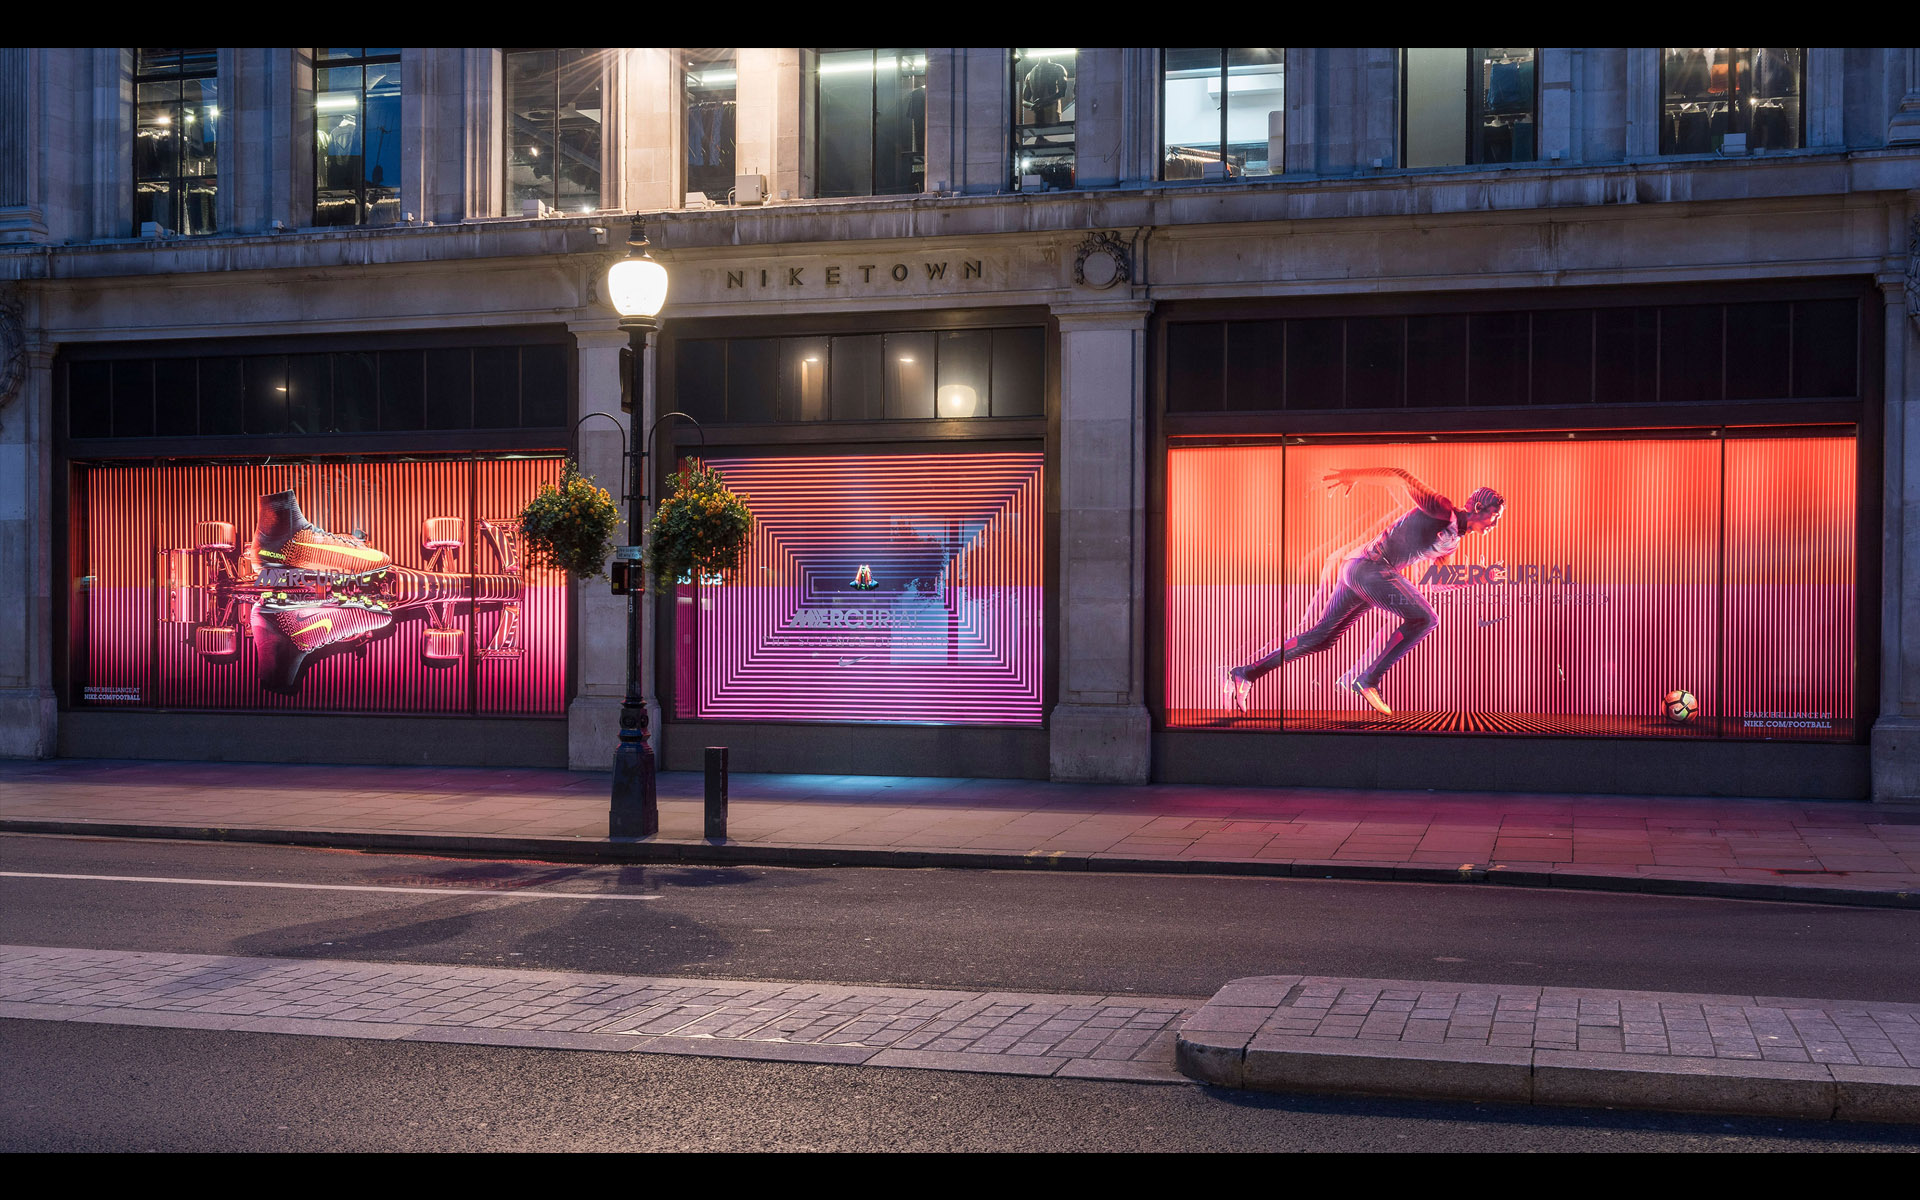 Niketown • Nike Art Director: David Chen • Creative agency: Intro • Director: Julian Gibbs